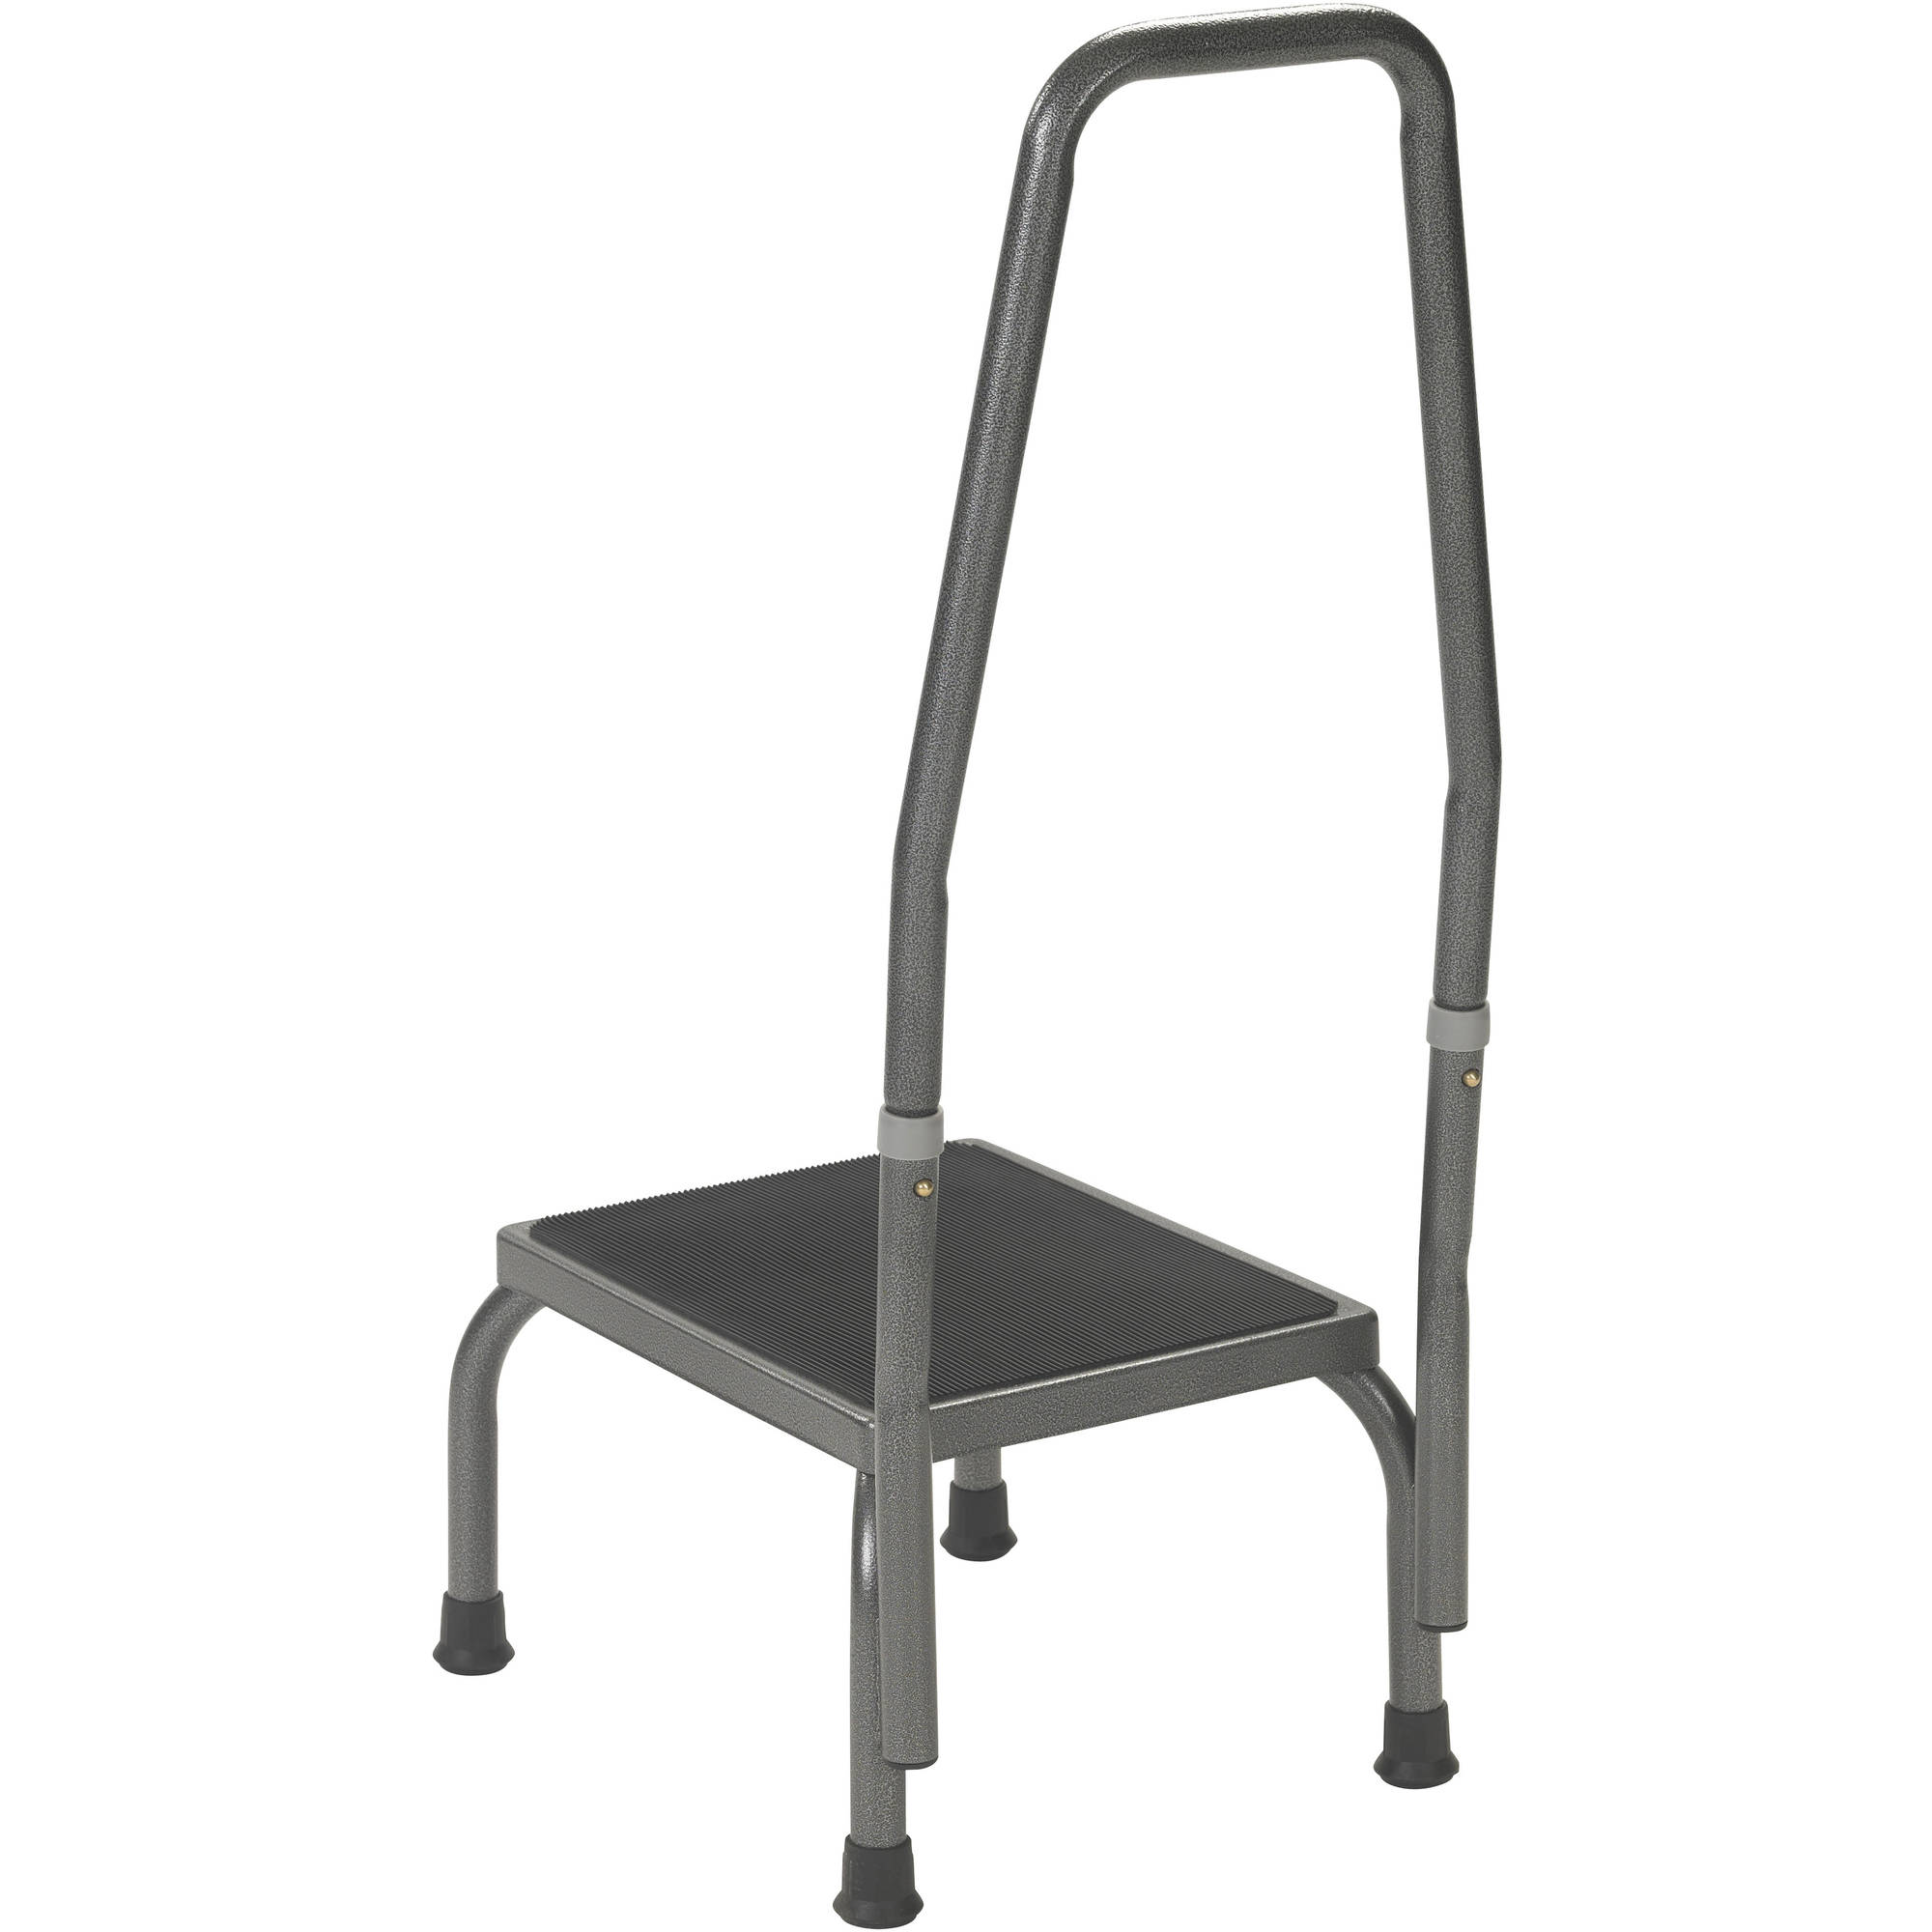 Drive Medical Footstool with Non Skid Rubber Platform and Handrail - Walmart.com  sc 1 st  Walmart & Drive Medical Footstool with Non Skid Rubber Platform and Handrail ... islam-shia.org